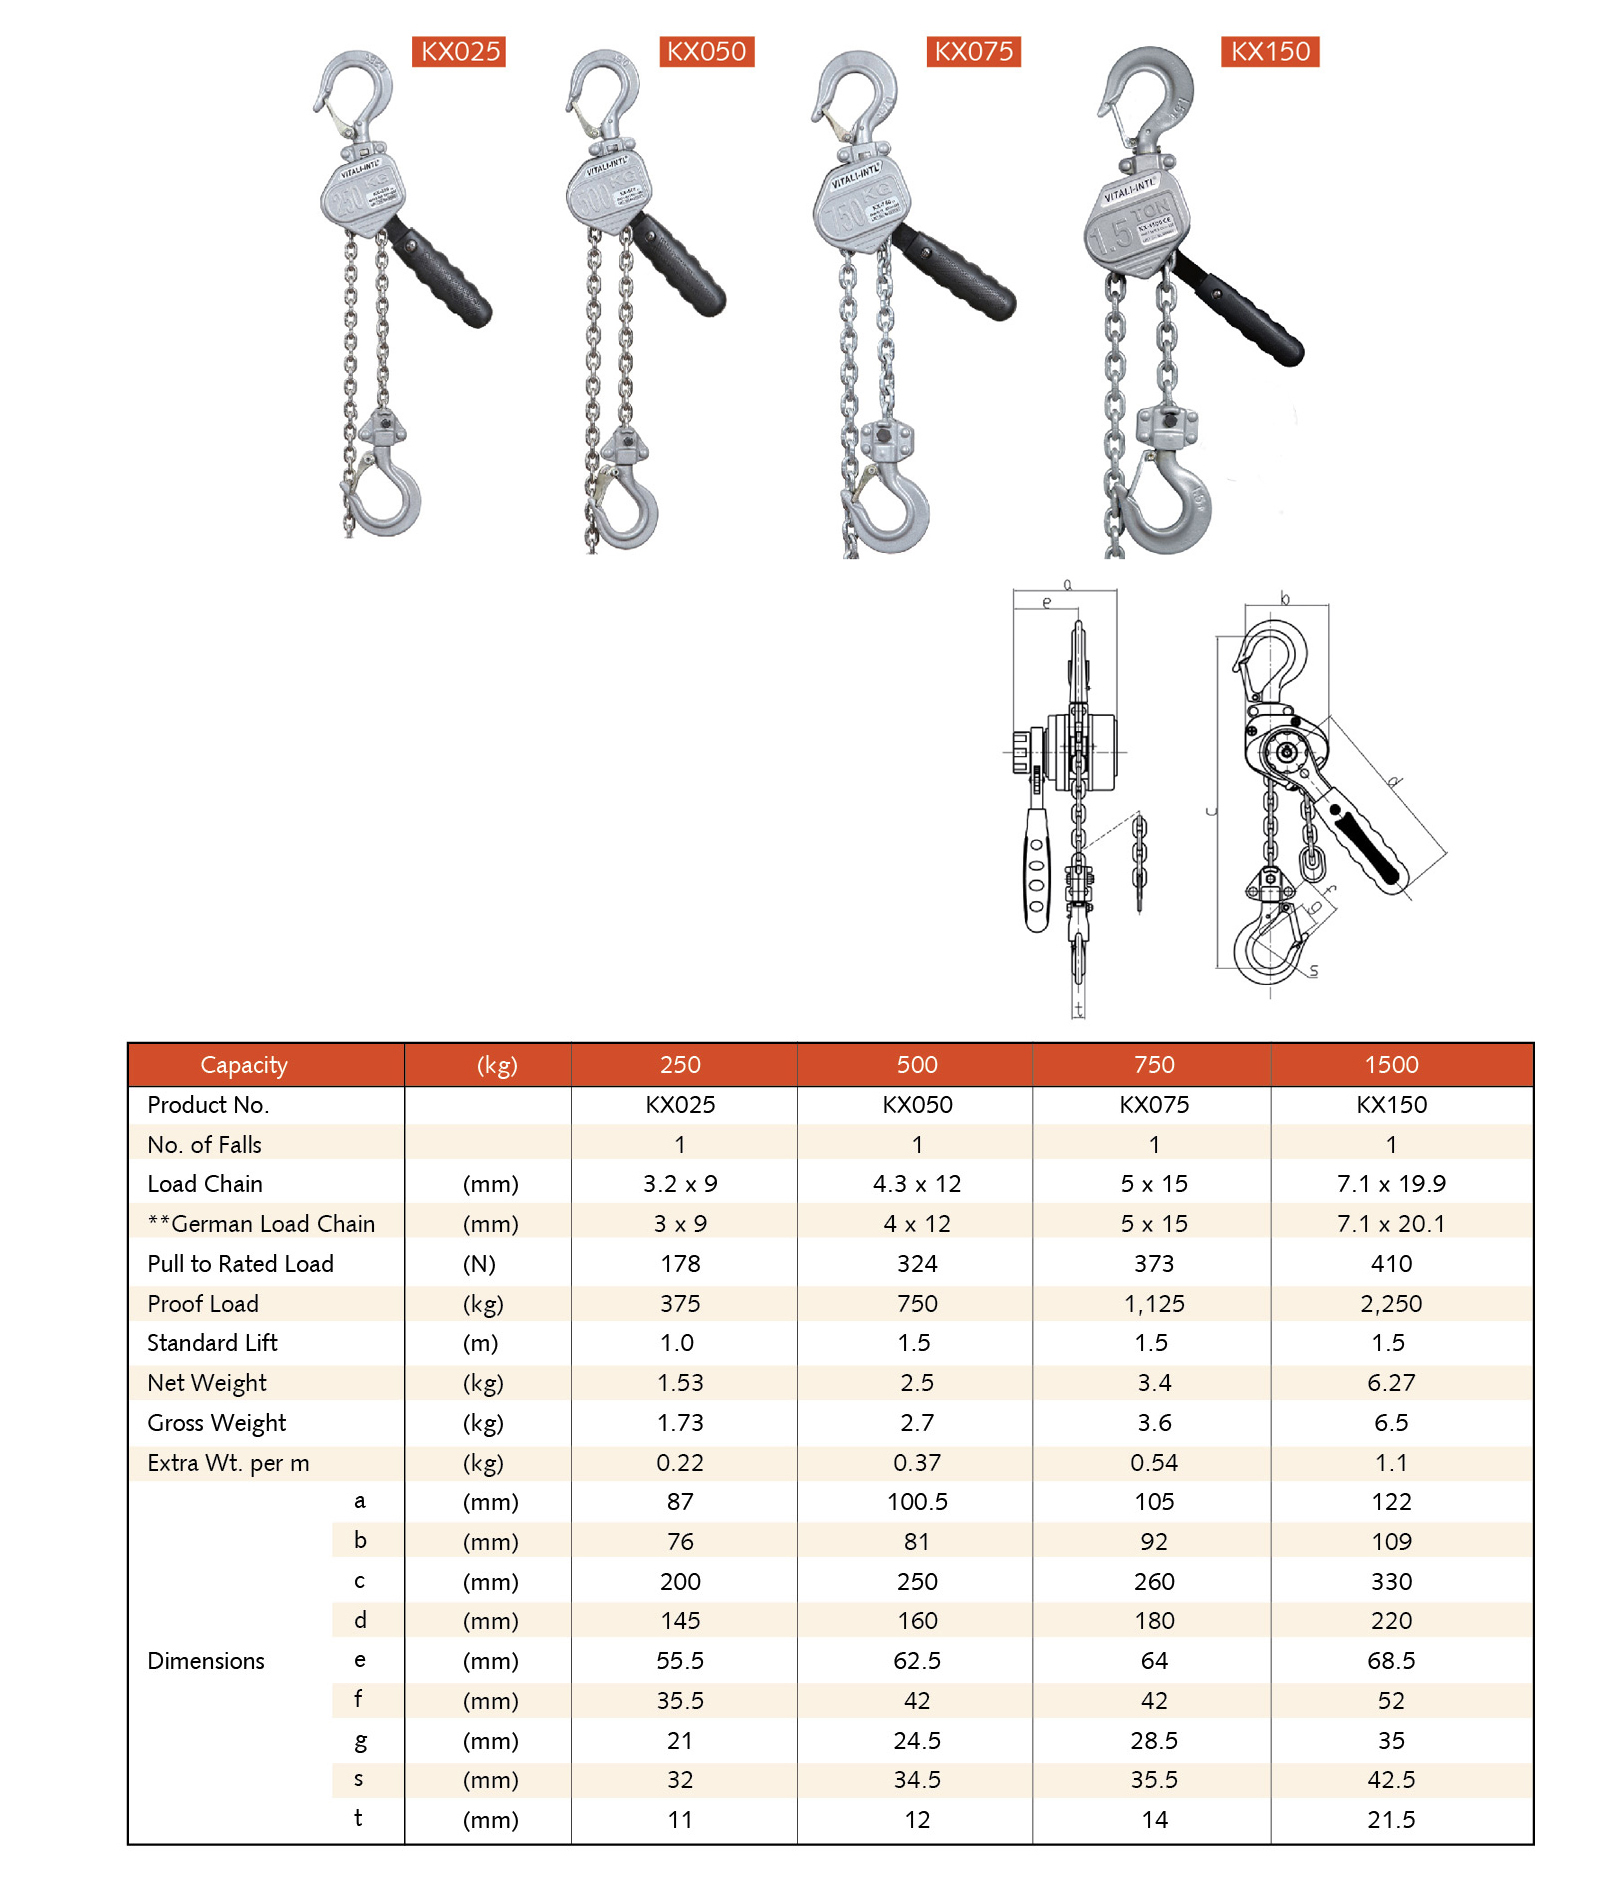 VITALI-INTL Lever Hoist KX Specifications